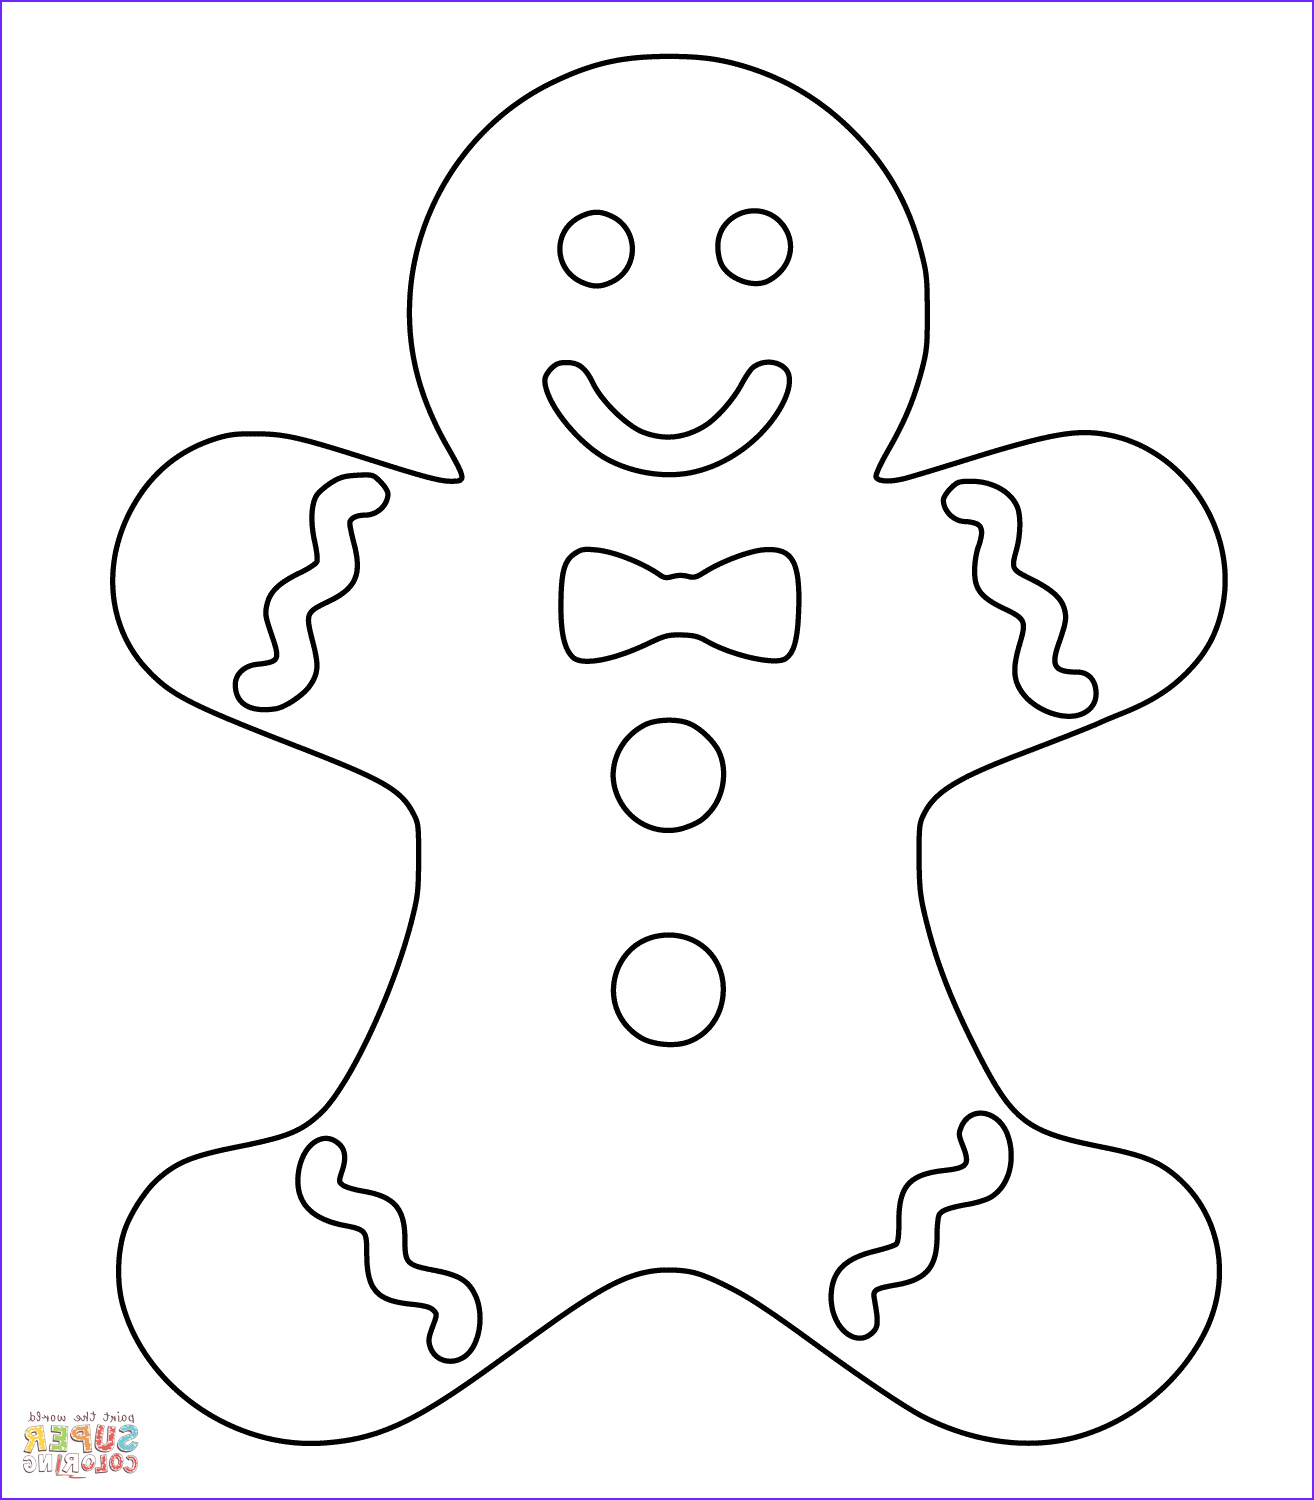 Gingerbread Coloring Page Cool Gallery Christmas Gingerbread Man Coloring Page